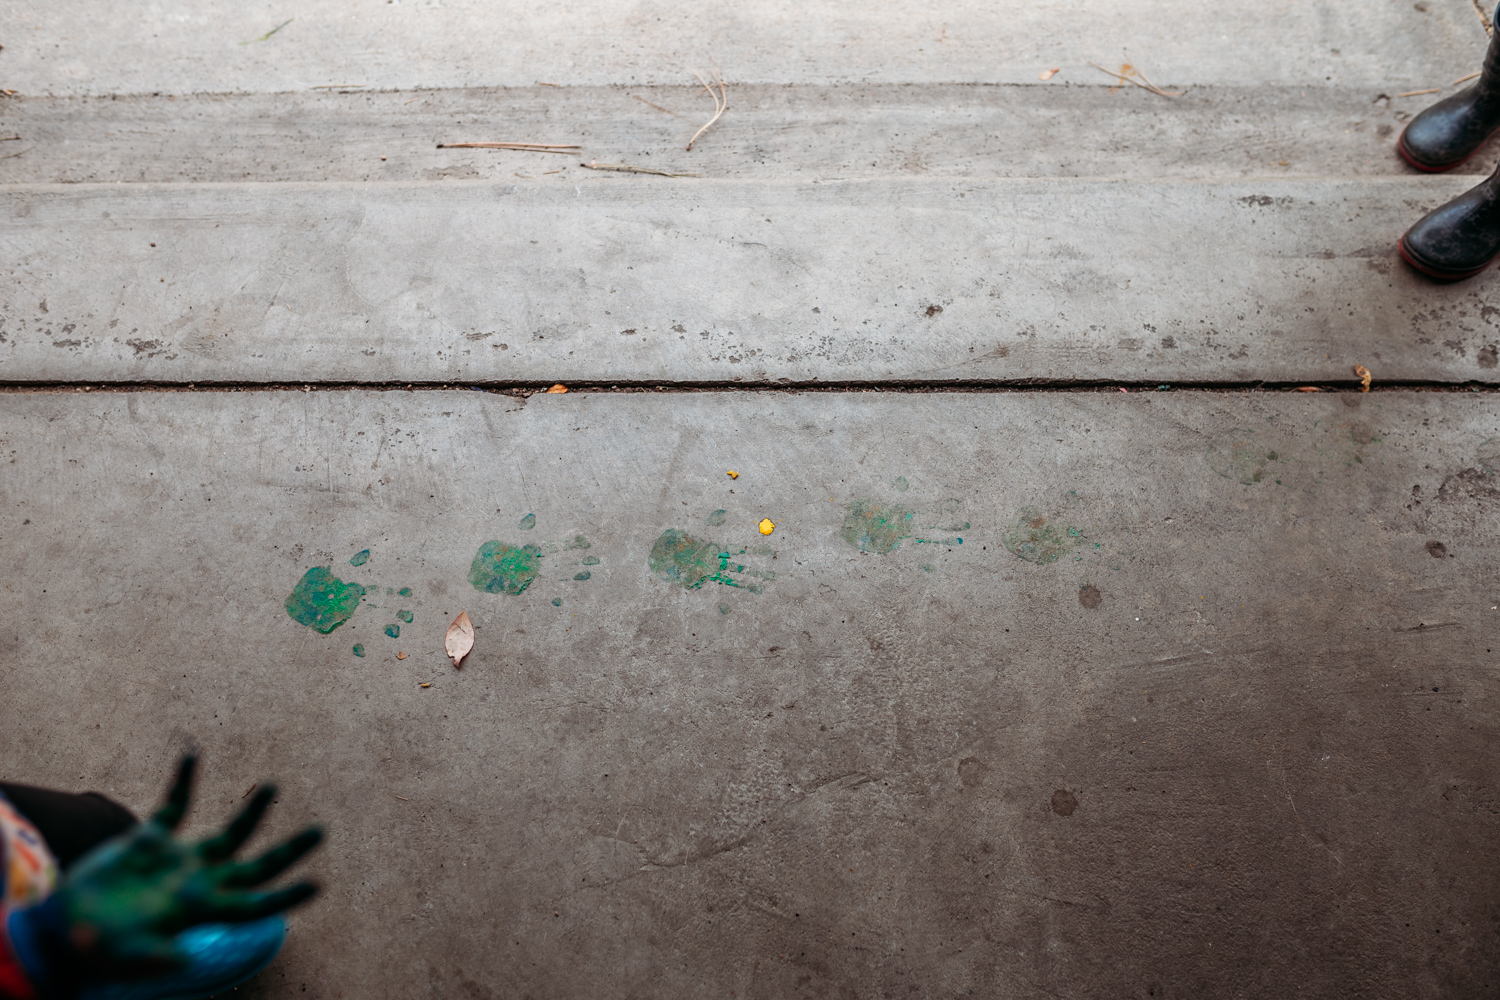 """Little girl's painted hands in bottom left hand corner of image, with painted handprints on concrete """"walking across"""" to top left corner with brother's boots."""